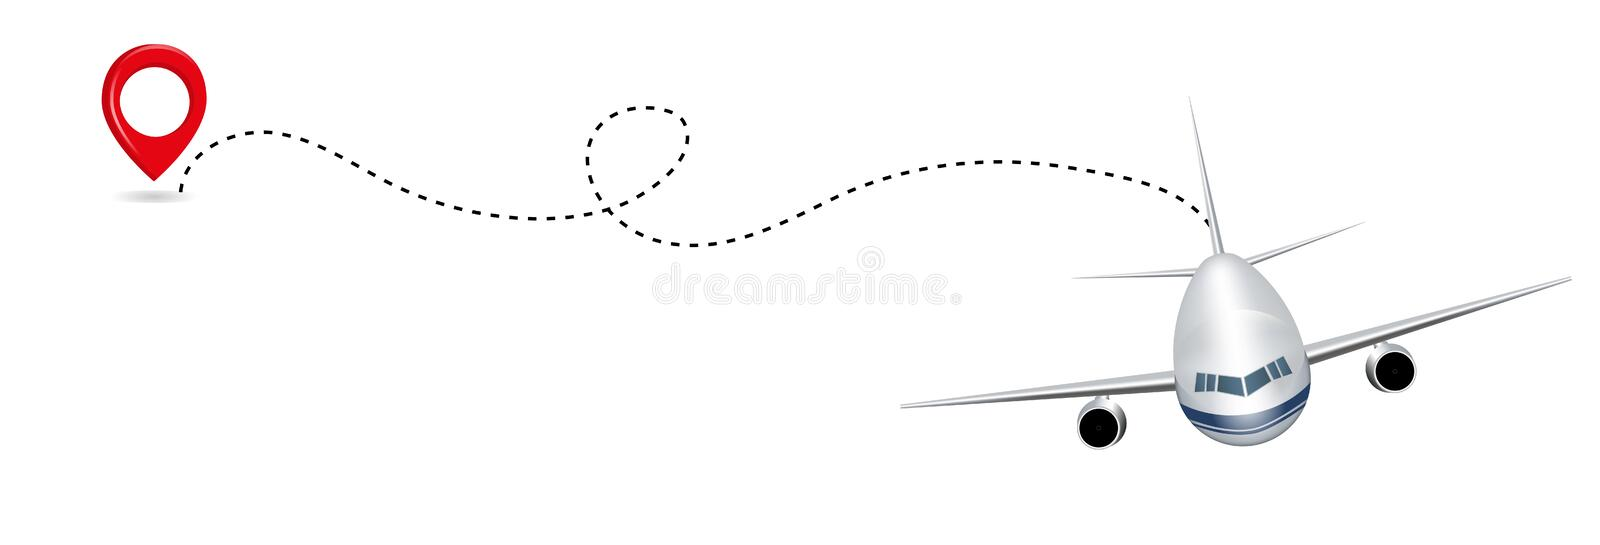 Airplane route in dotted line shape isolated on white background. Abstract concept graphic element for air transportation presenta royalty free illustration